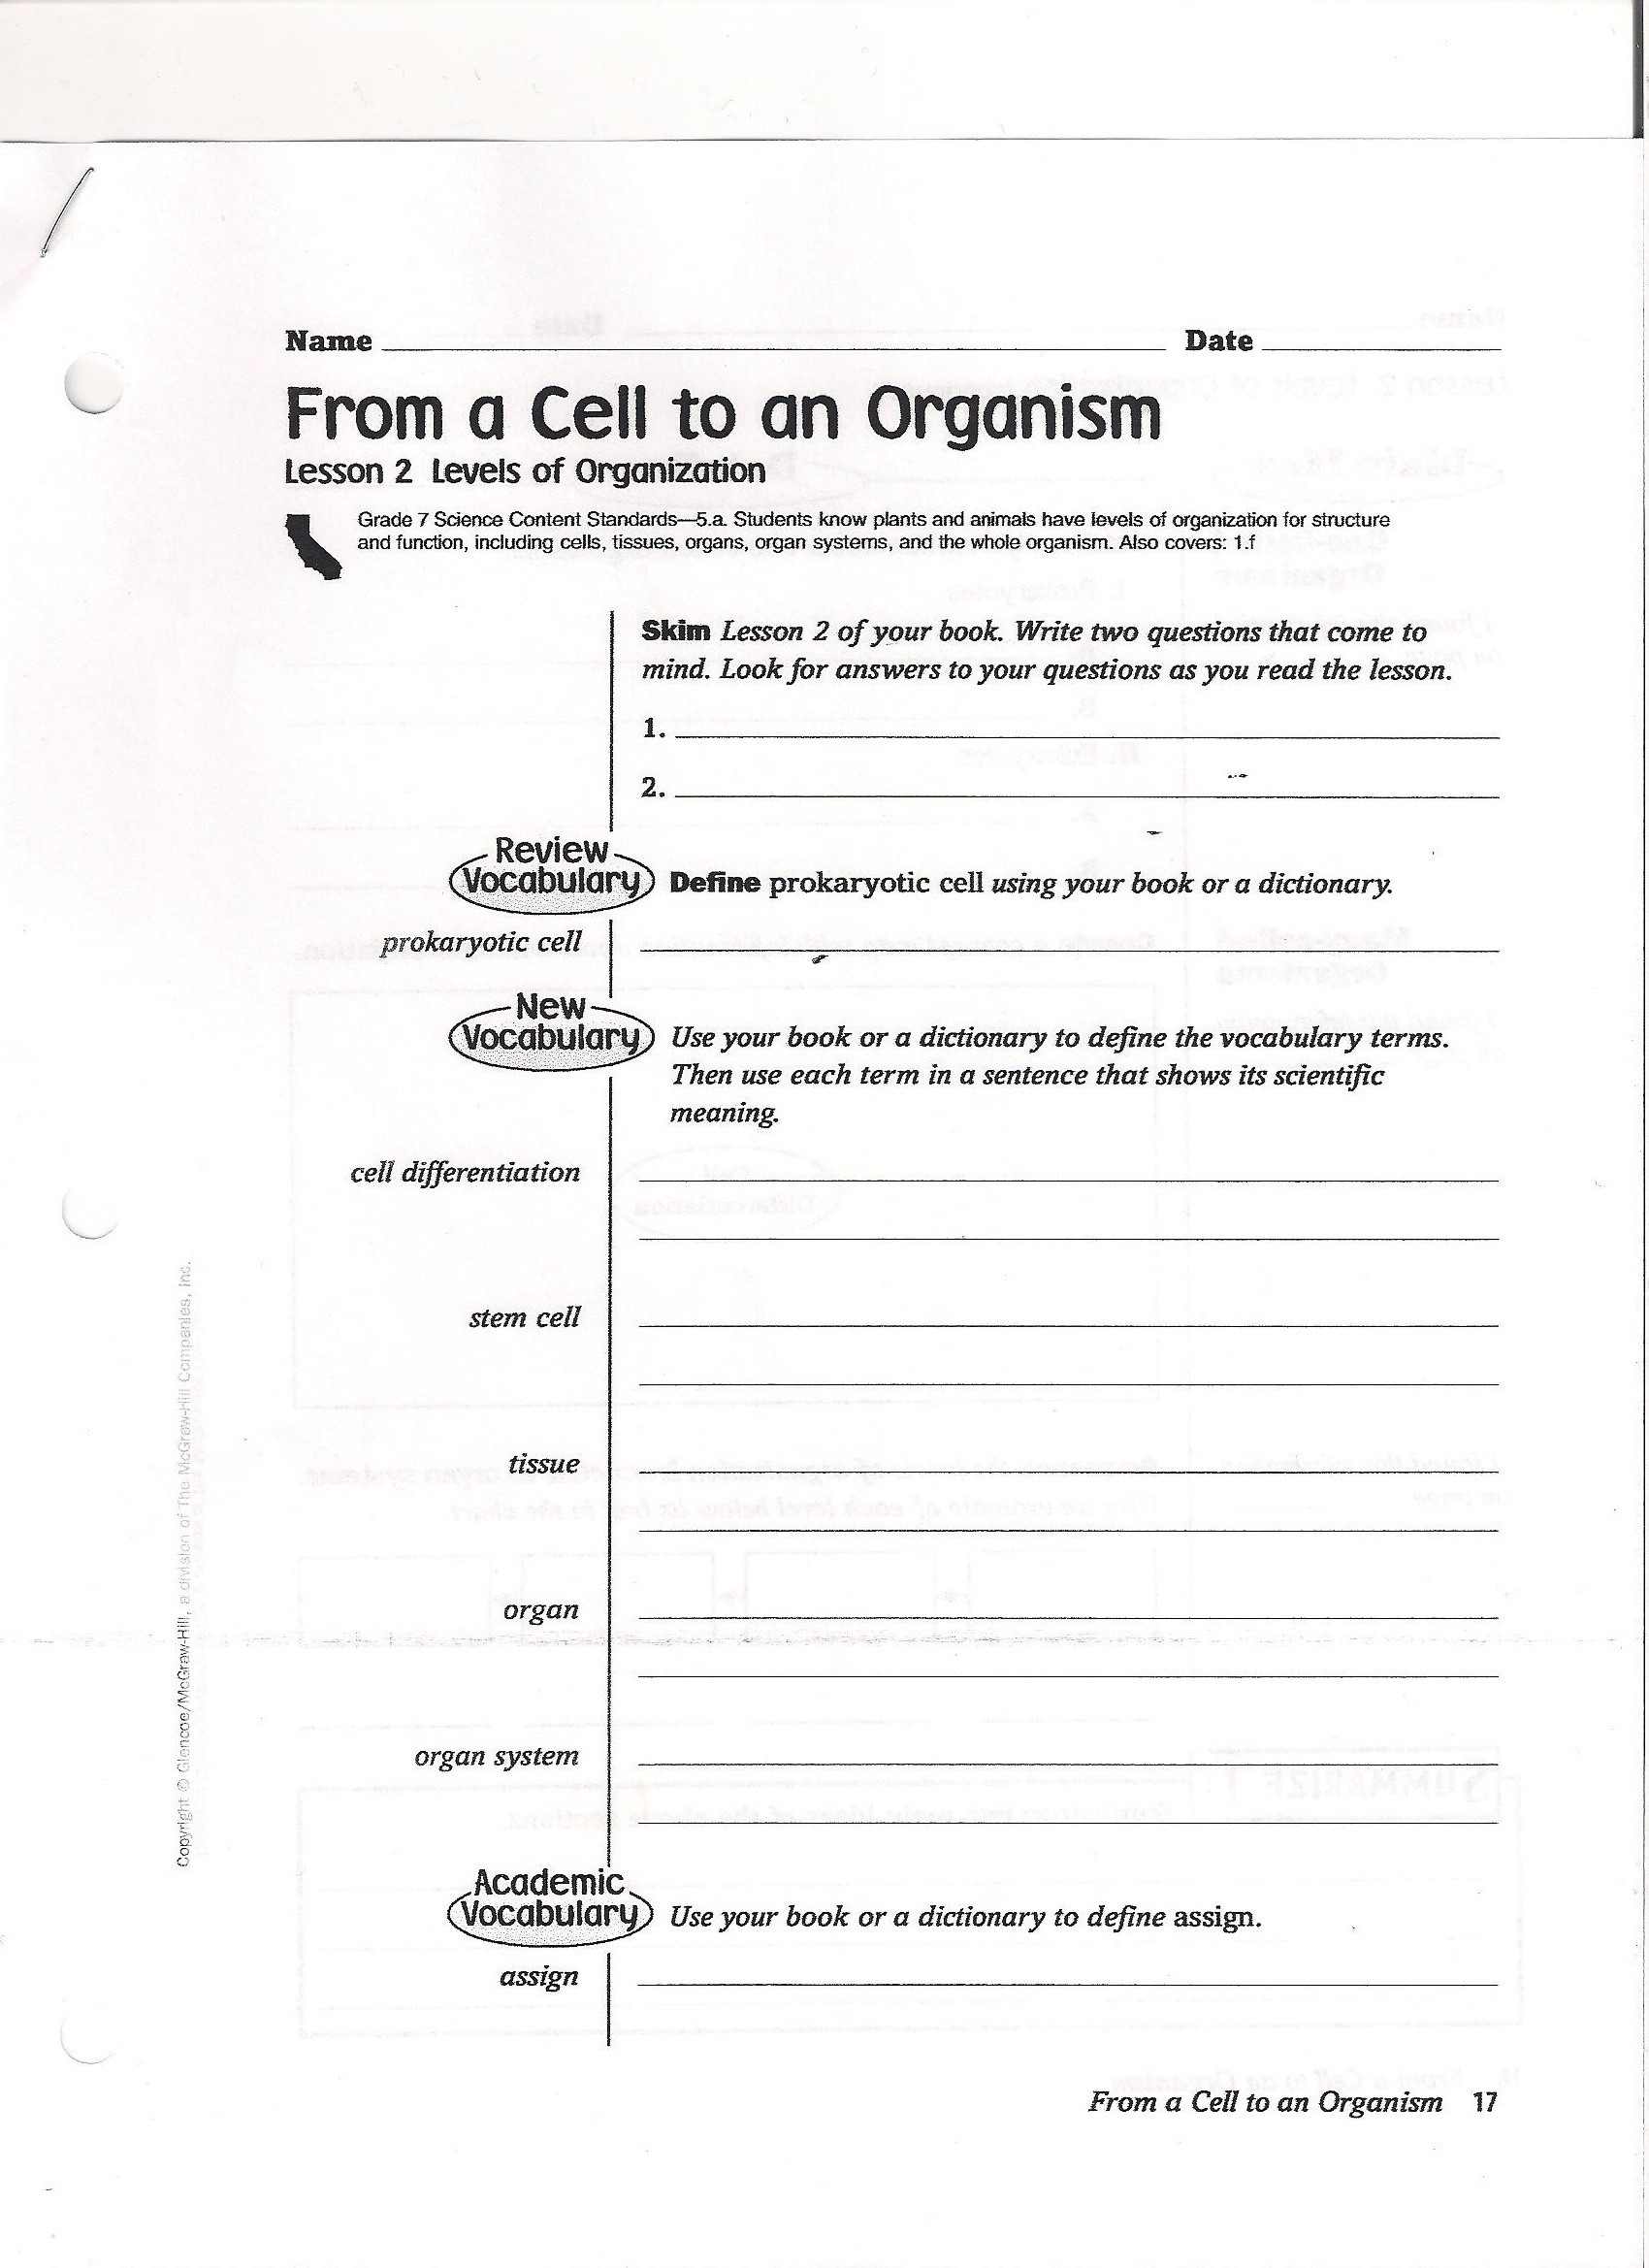 7th Grade Life Science Worksheets Unique is Life Science Worksheet Educational 7th Grade